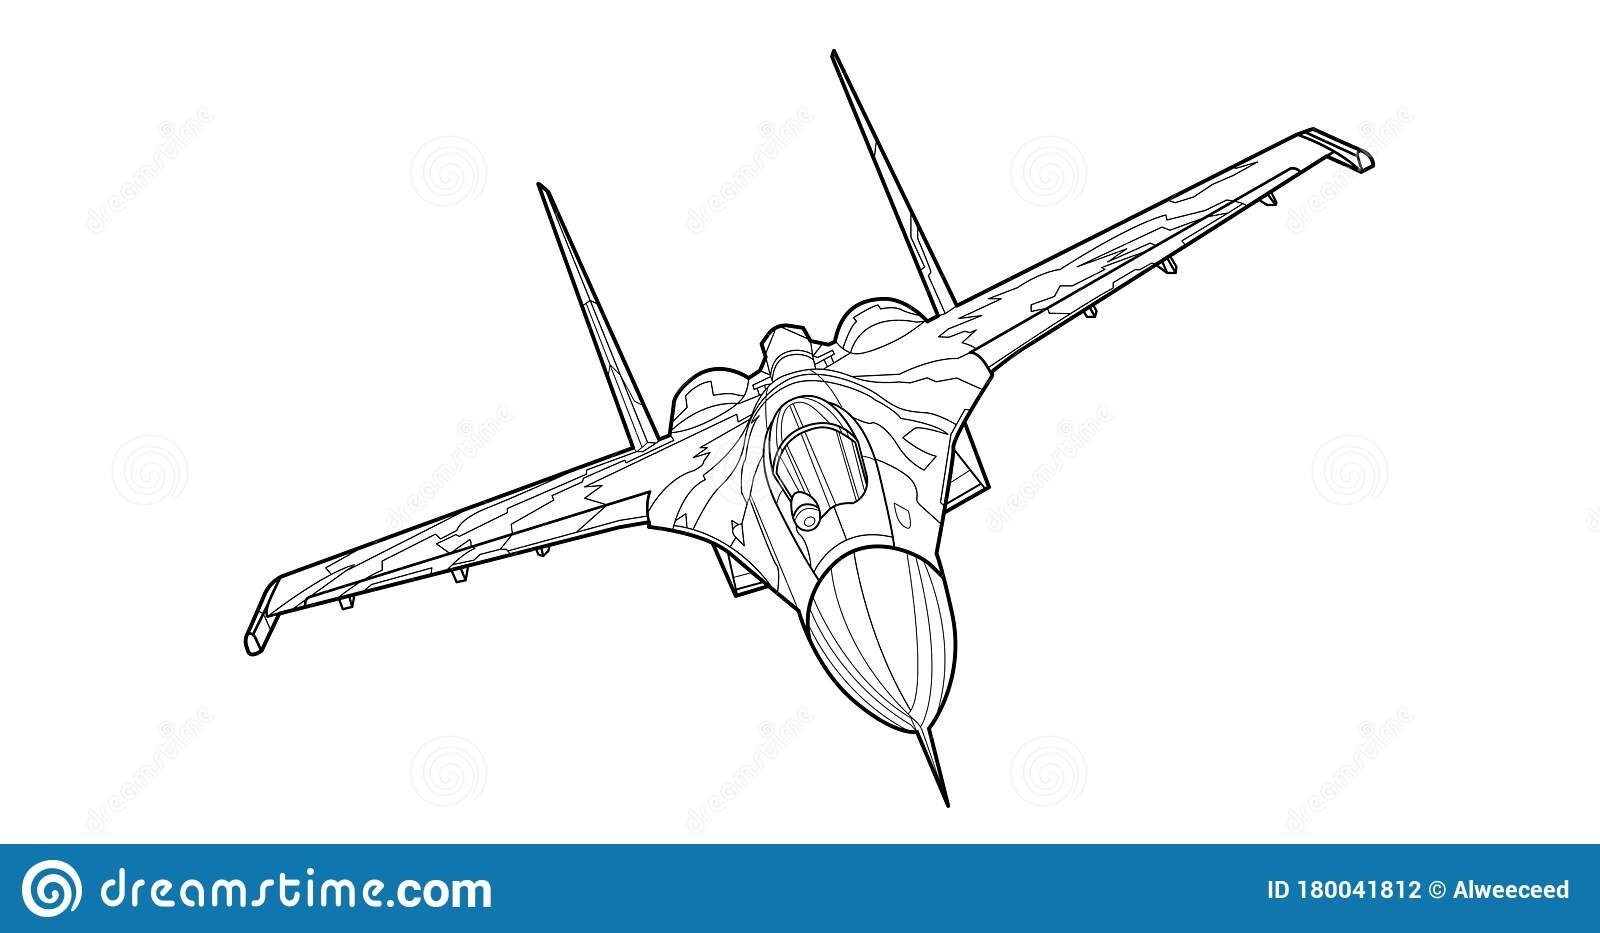 Adult Military Aircraft Coloring Page For Book Vector Black Contour Sketch Illustrate Isolated On White Background Stock Vector Illustration Of Silhouette Side 180041812